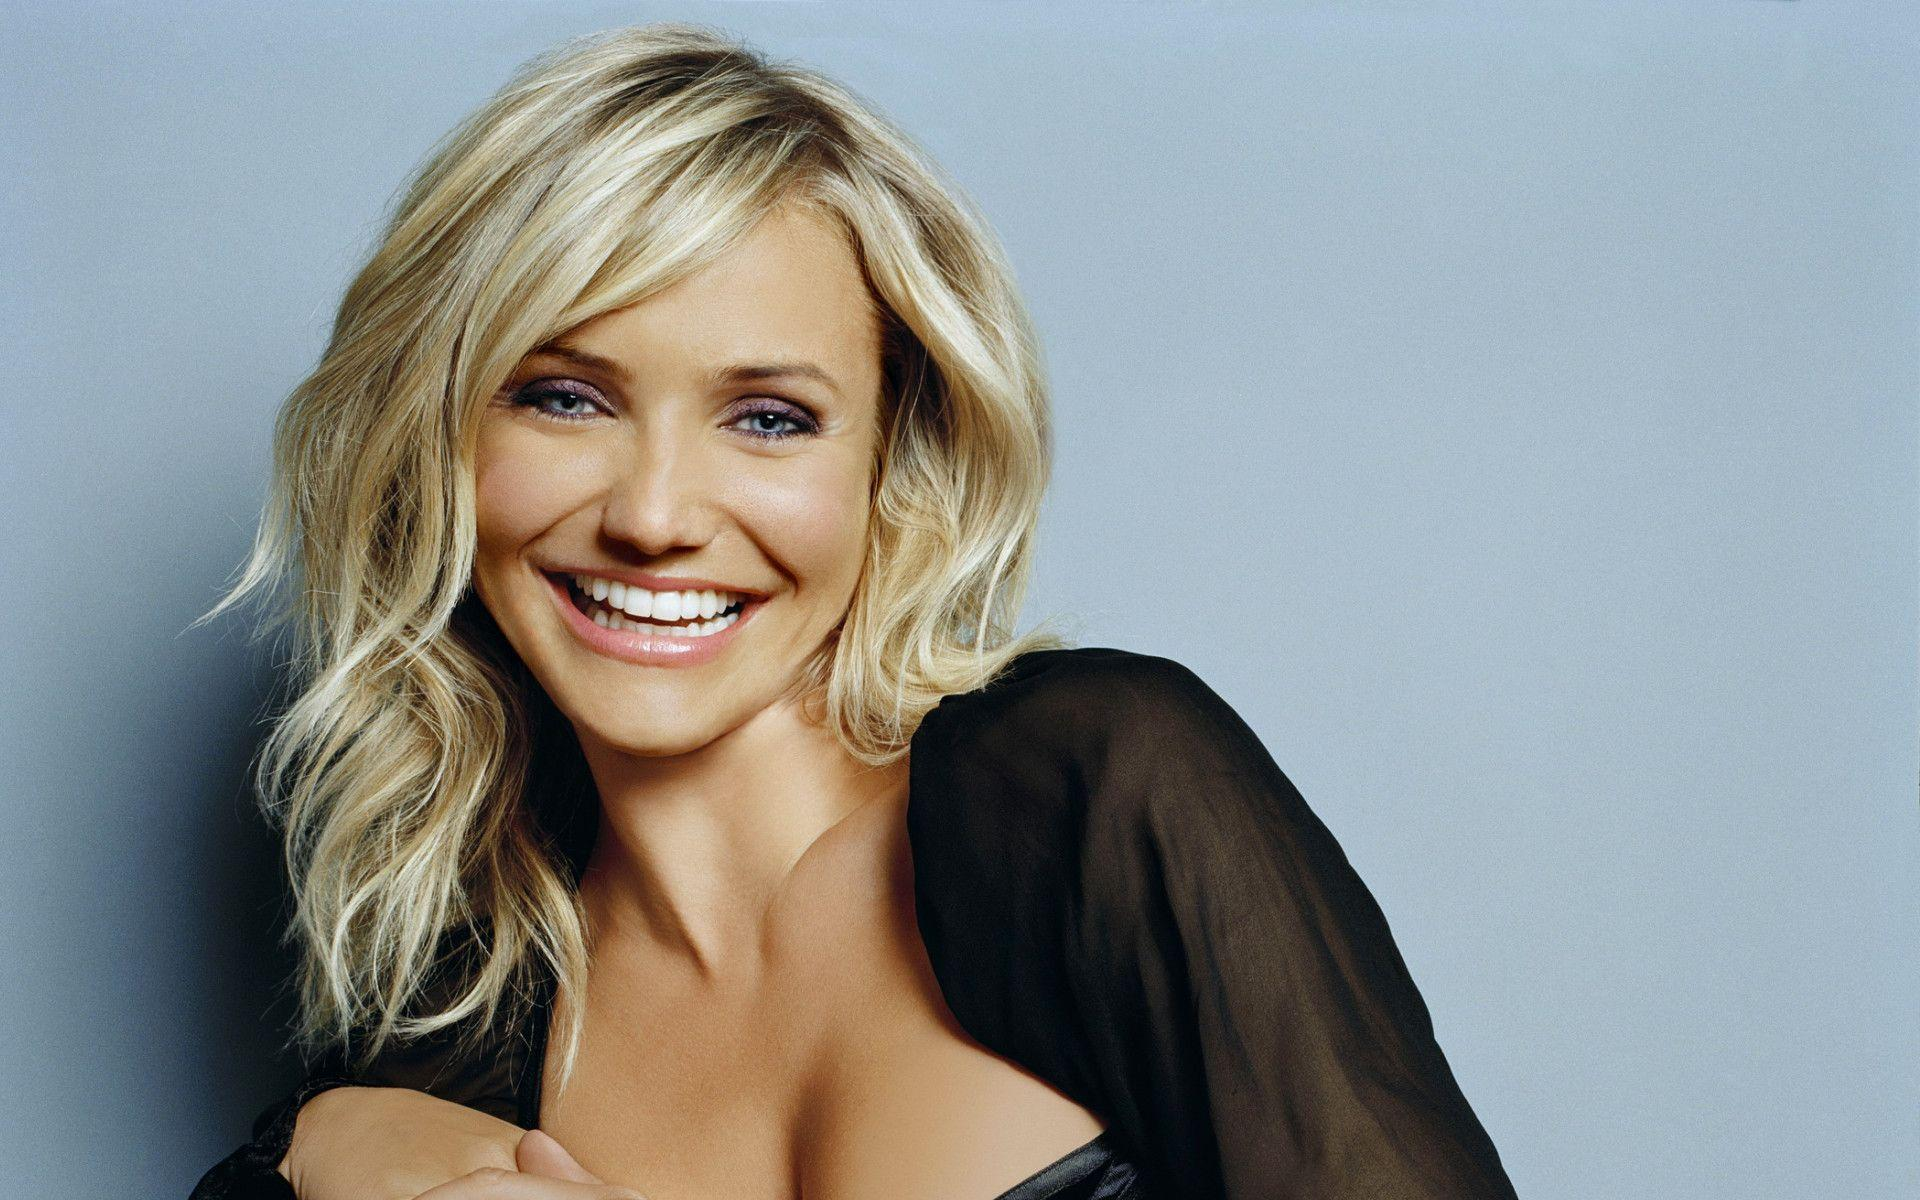 Cameron Diaz wallpaper | 1920x1200 | #76580